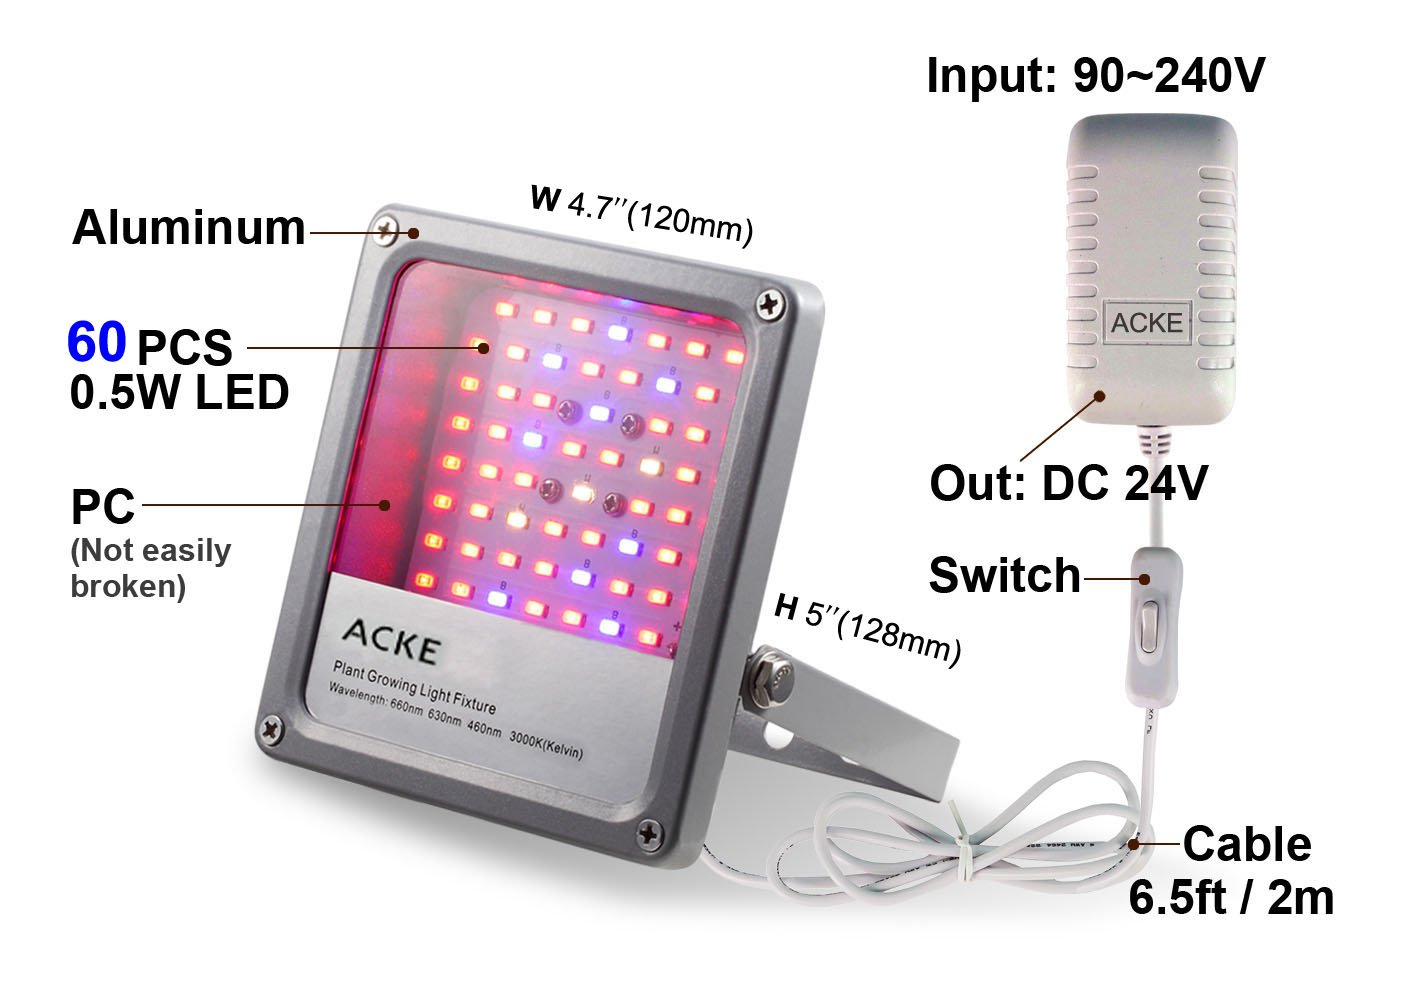 Amazon acke led grow lights fixtures plant lights 24w for amazon acke led grow lights fixtures plant lights 24w for plants seedlings hydroponics green house aeroponics herbs veg flower smd with switch arubaitofo Gallery